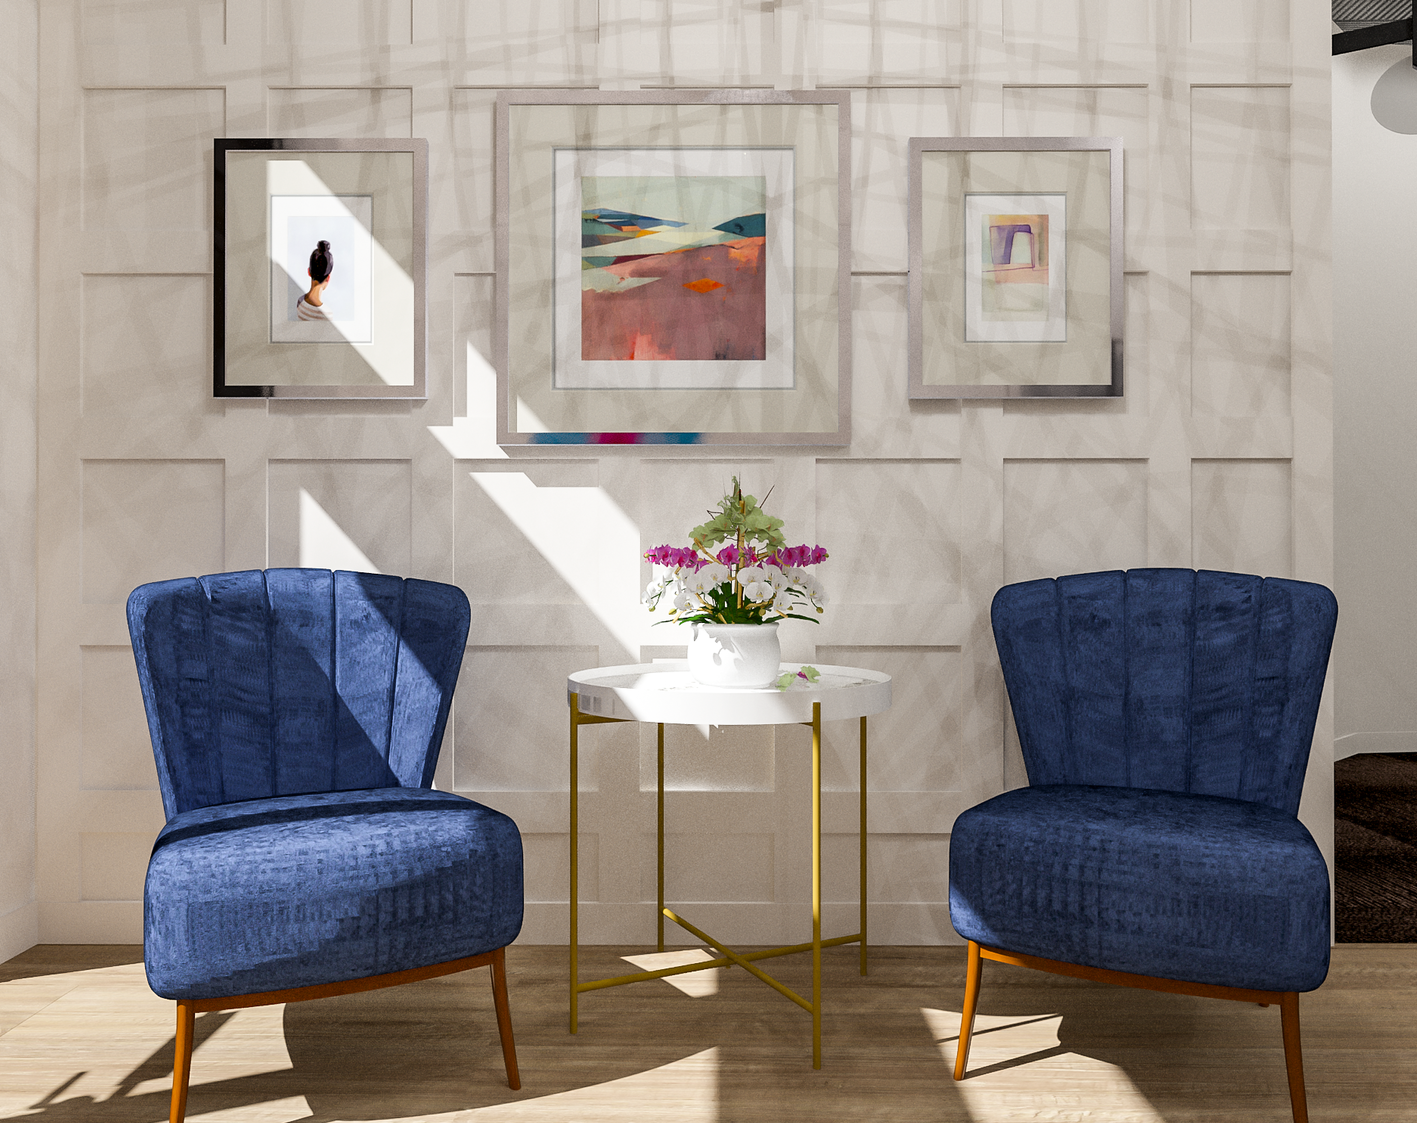 Sola Salons Entryway Scheme | Designed by Bell + Boy Design Co.| Rendered by Kelly Fridline Design using Chief Architect X10